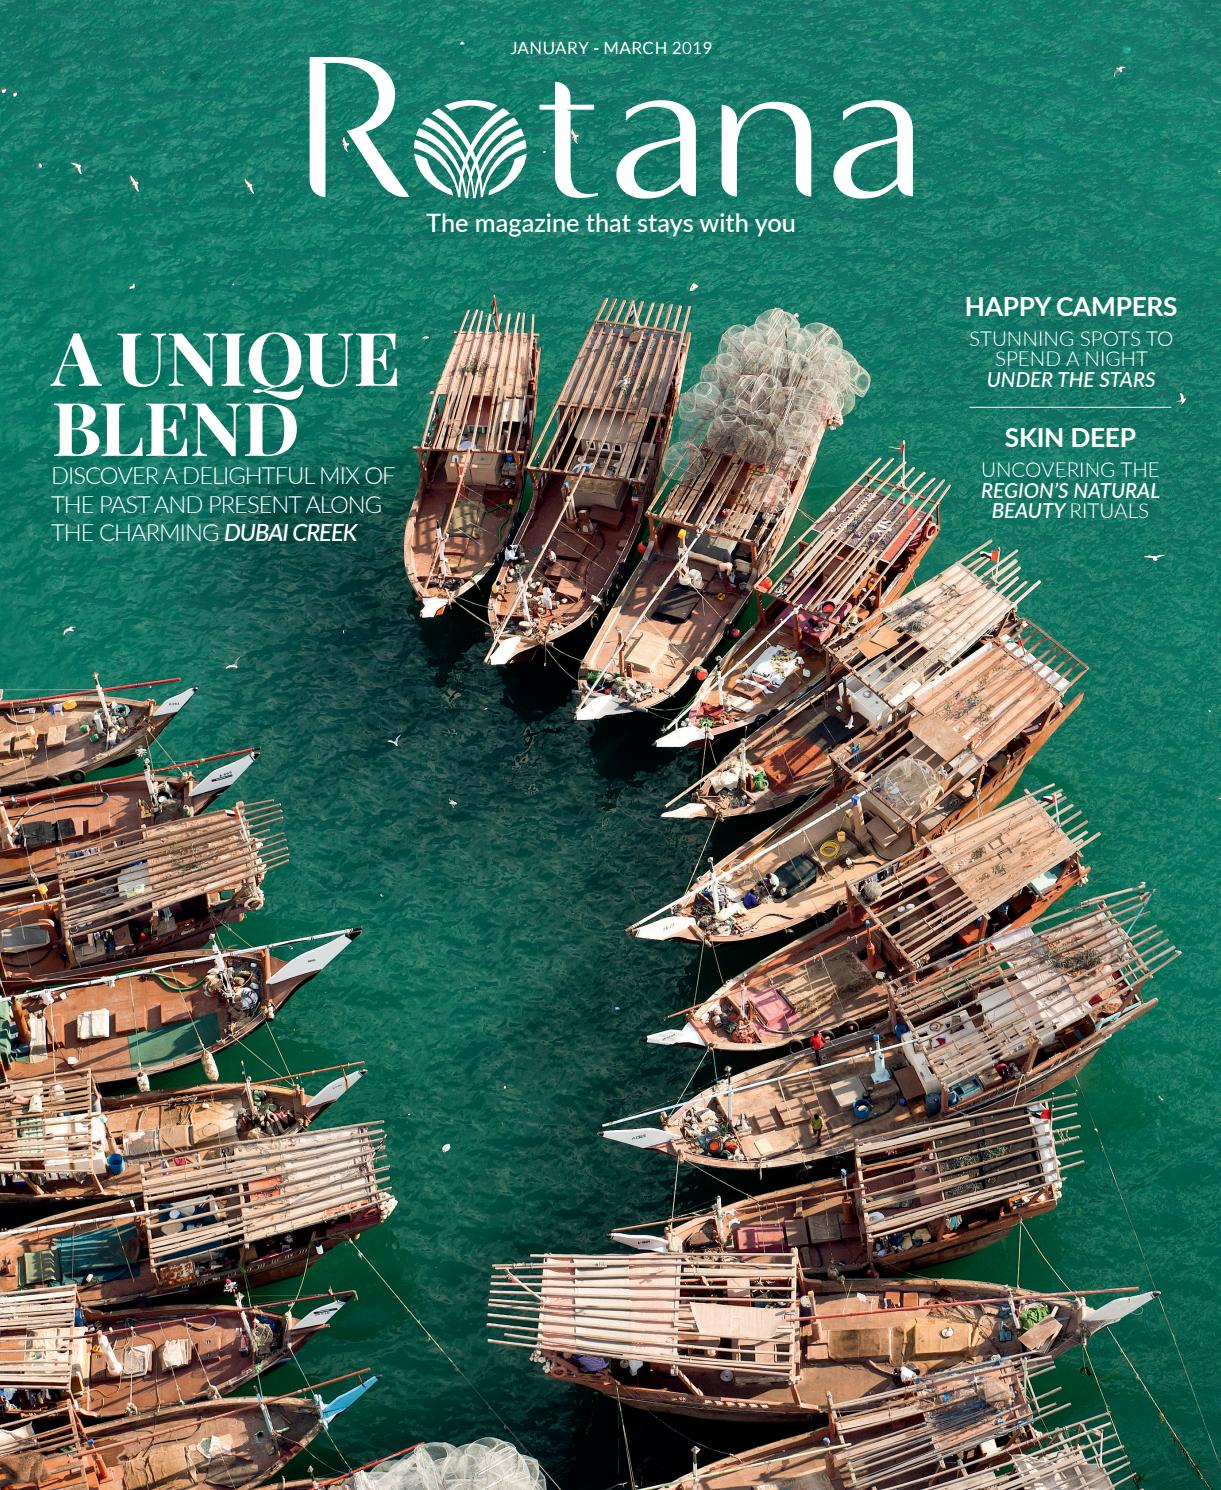 272fadece Rotana January - March 2019 by Rotana Magazine - issuu